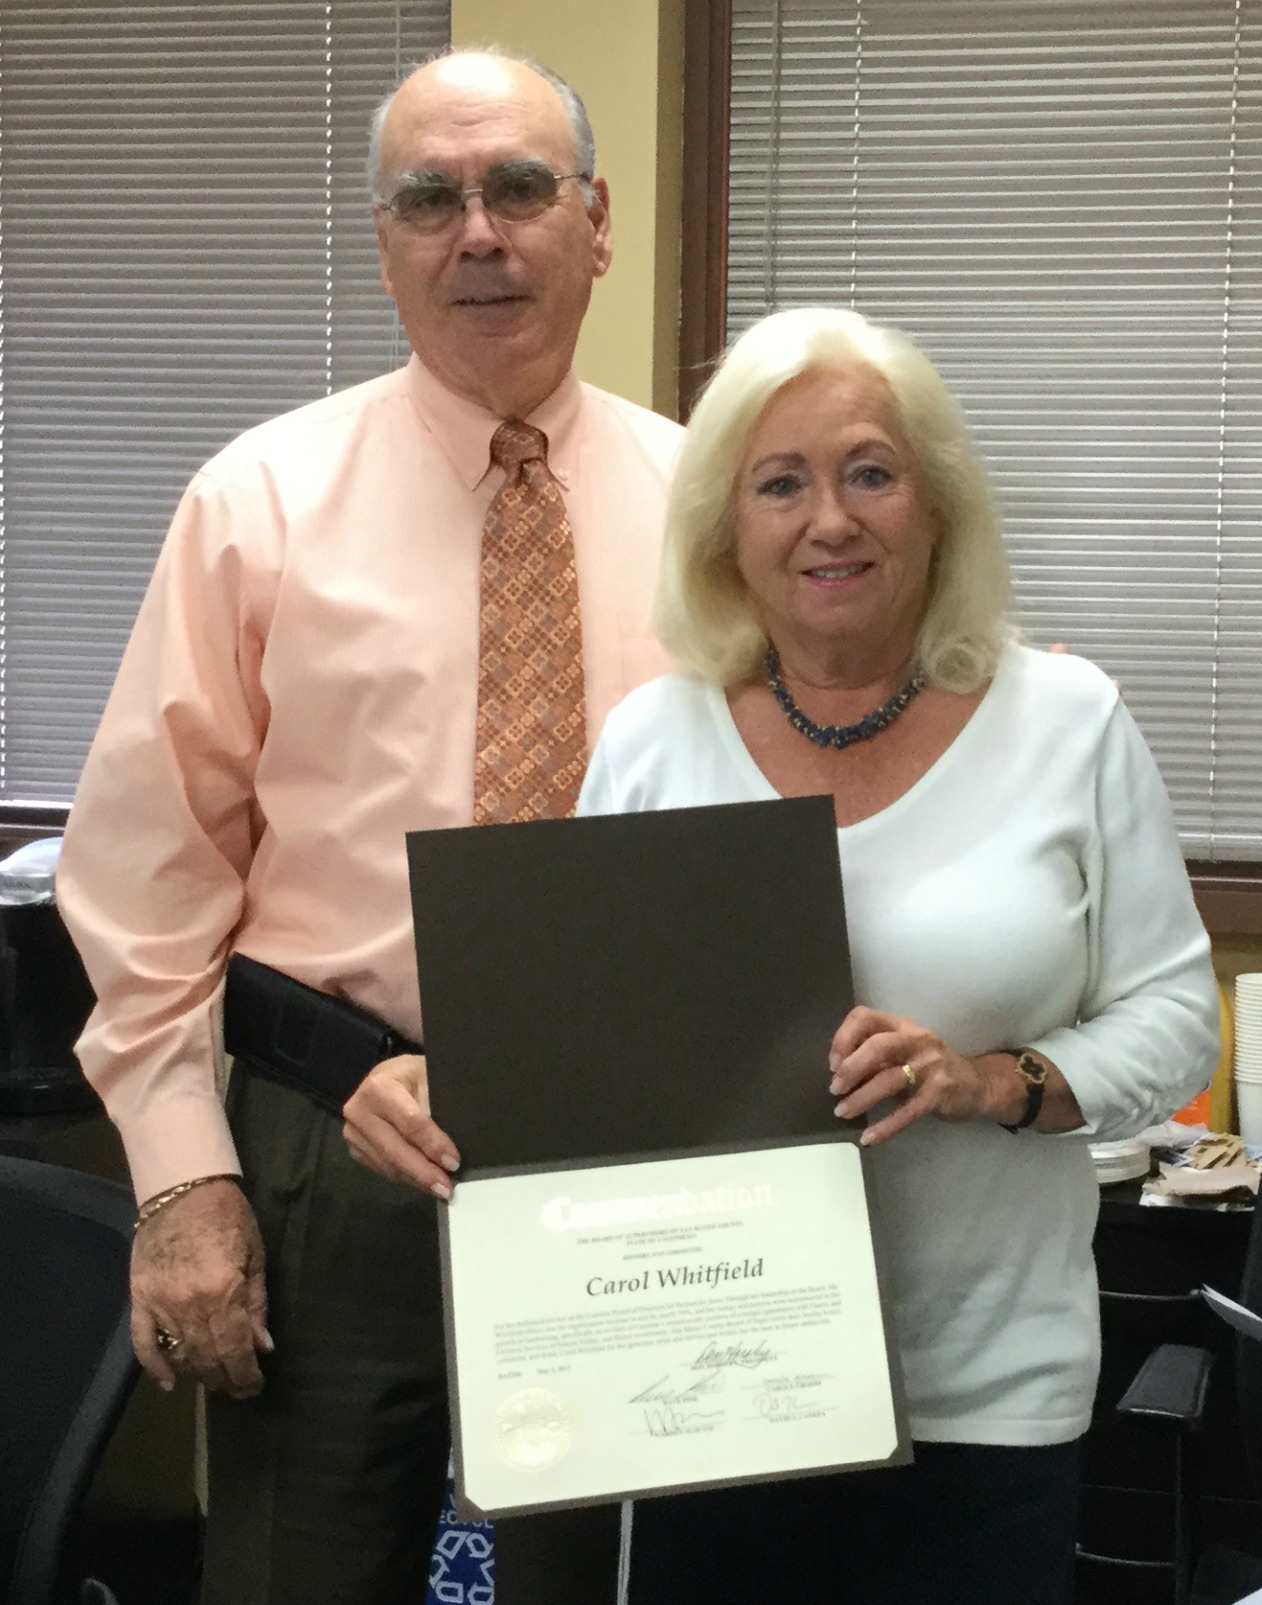 carol whitfield recognition.JPG